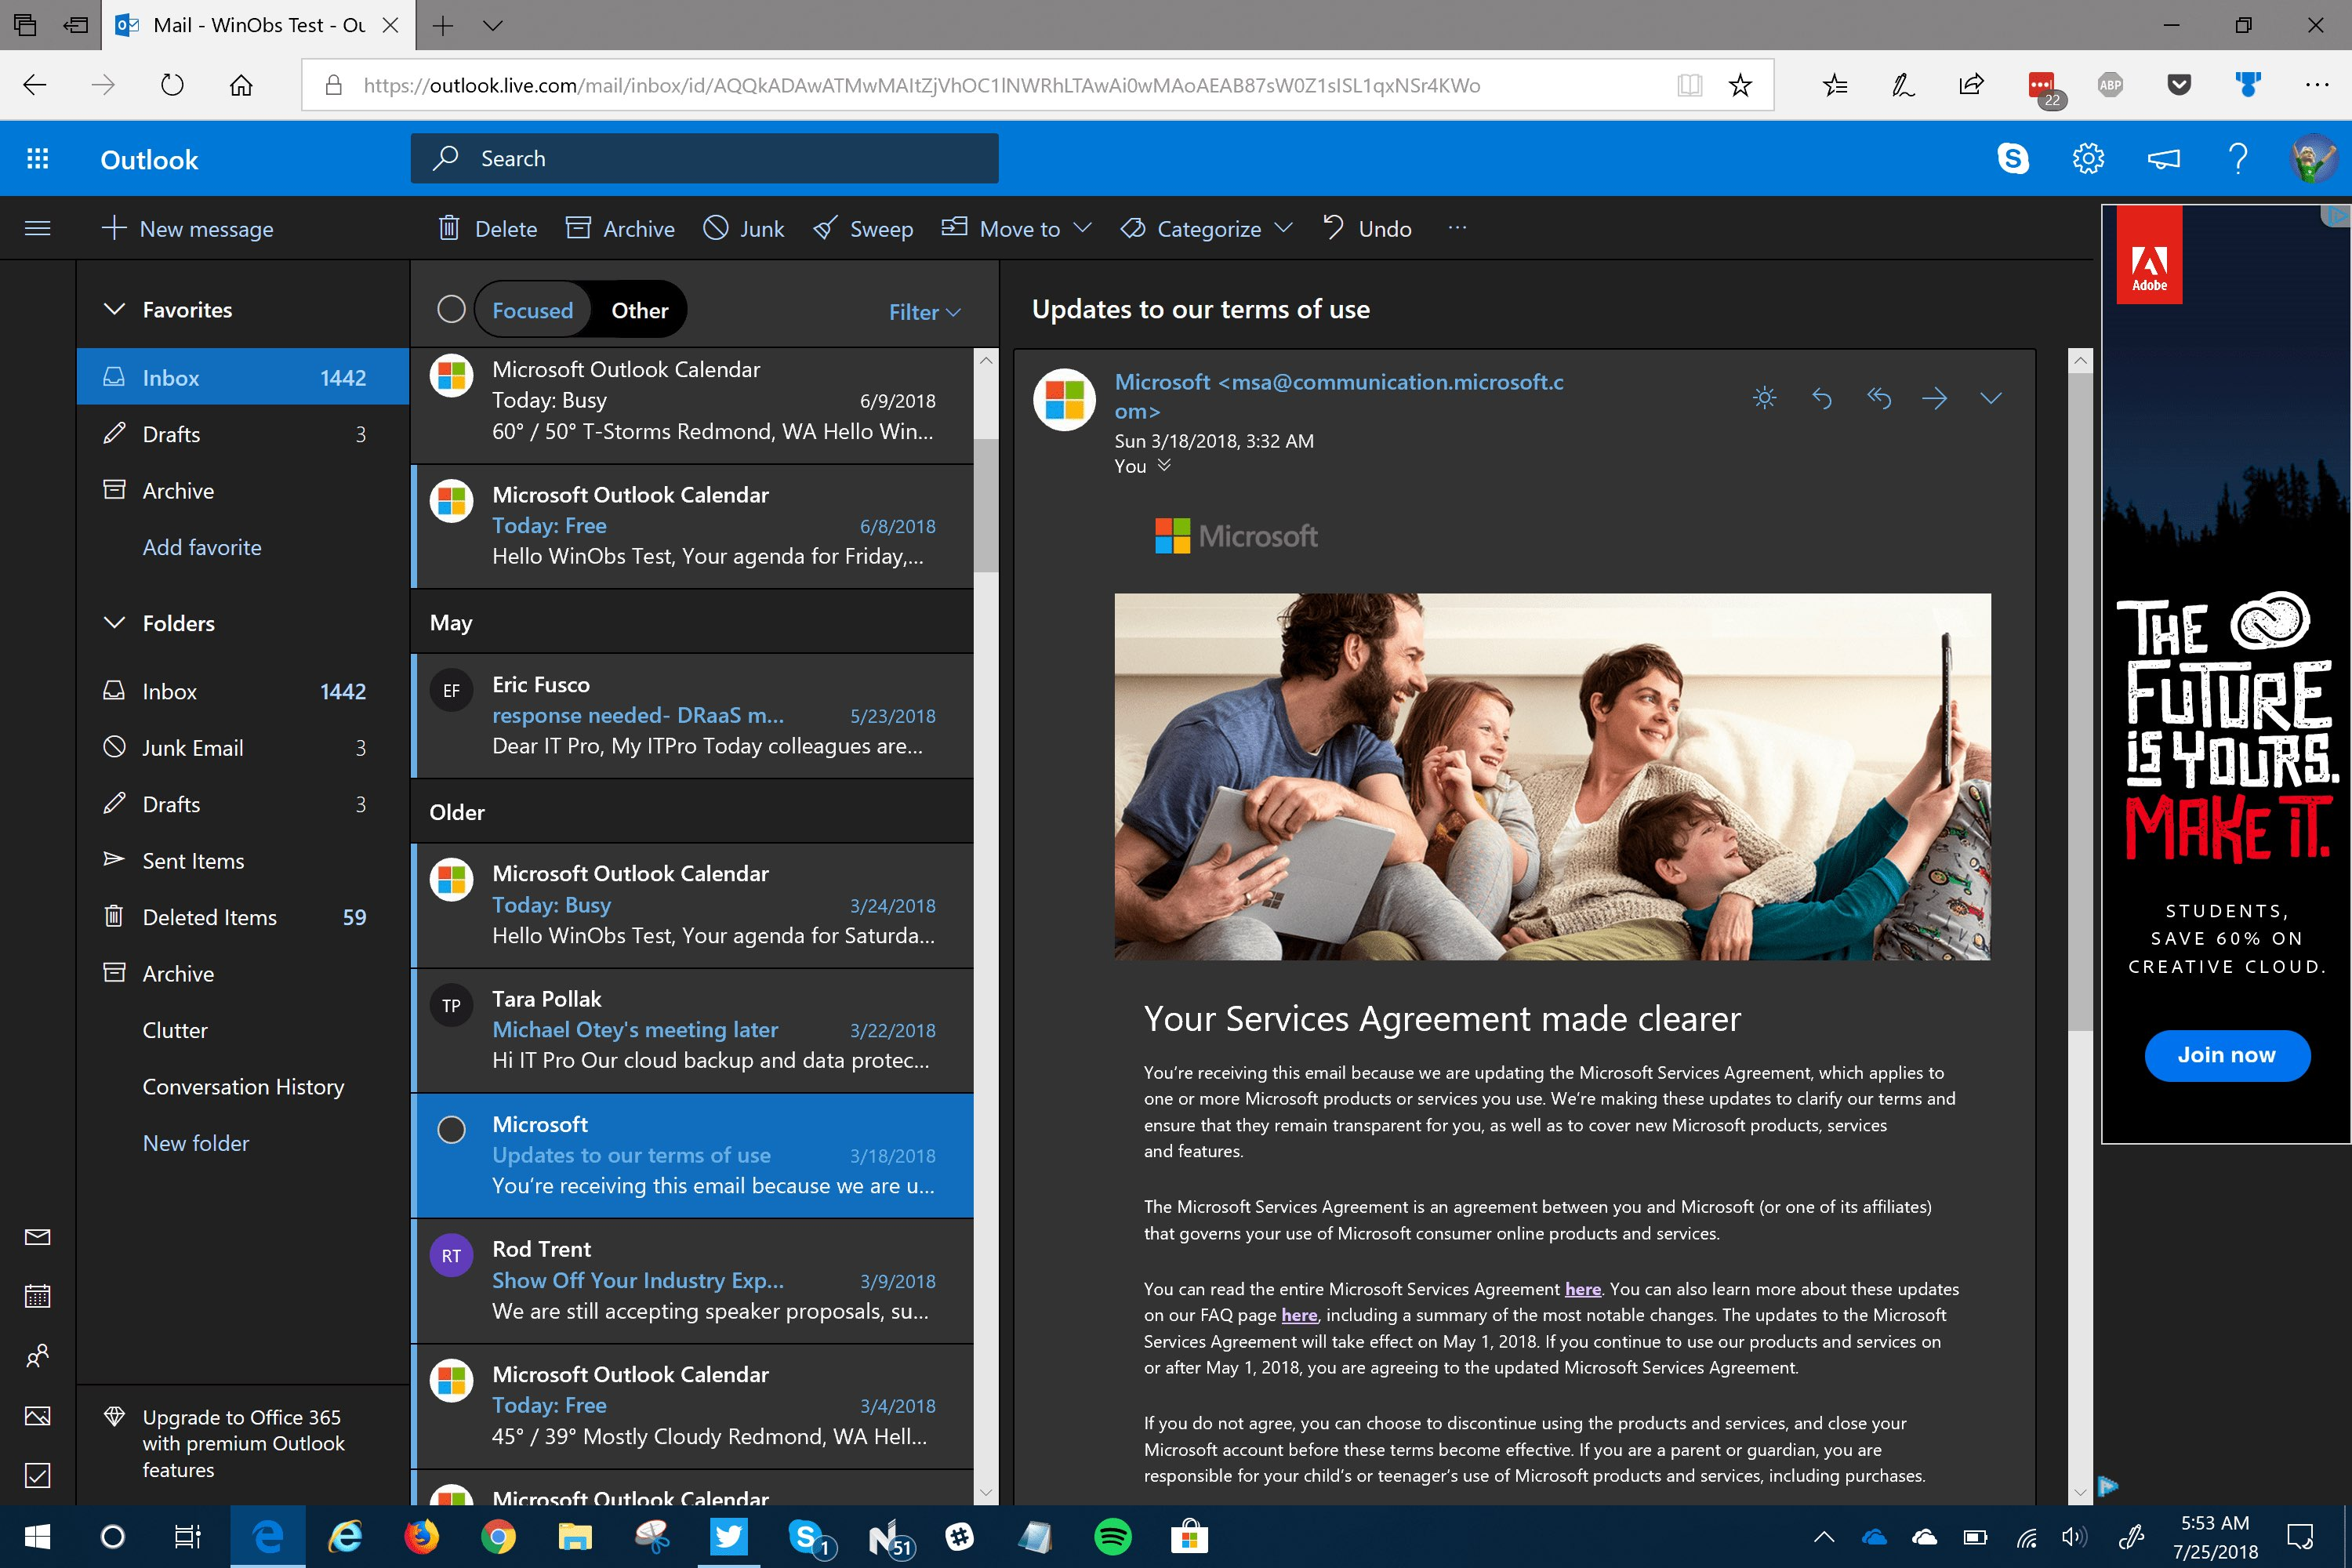 Example screenshots showcasing the various aspects of Dark Mode on Outlook.com